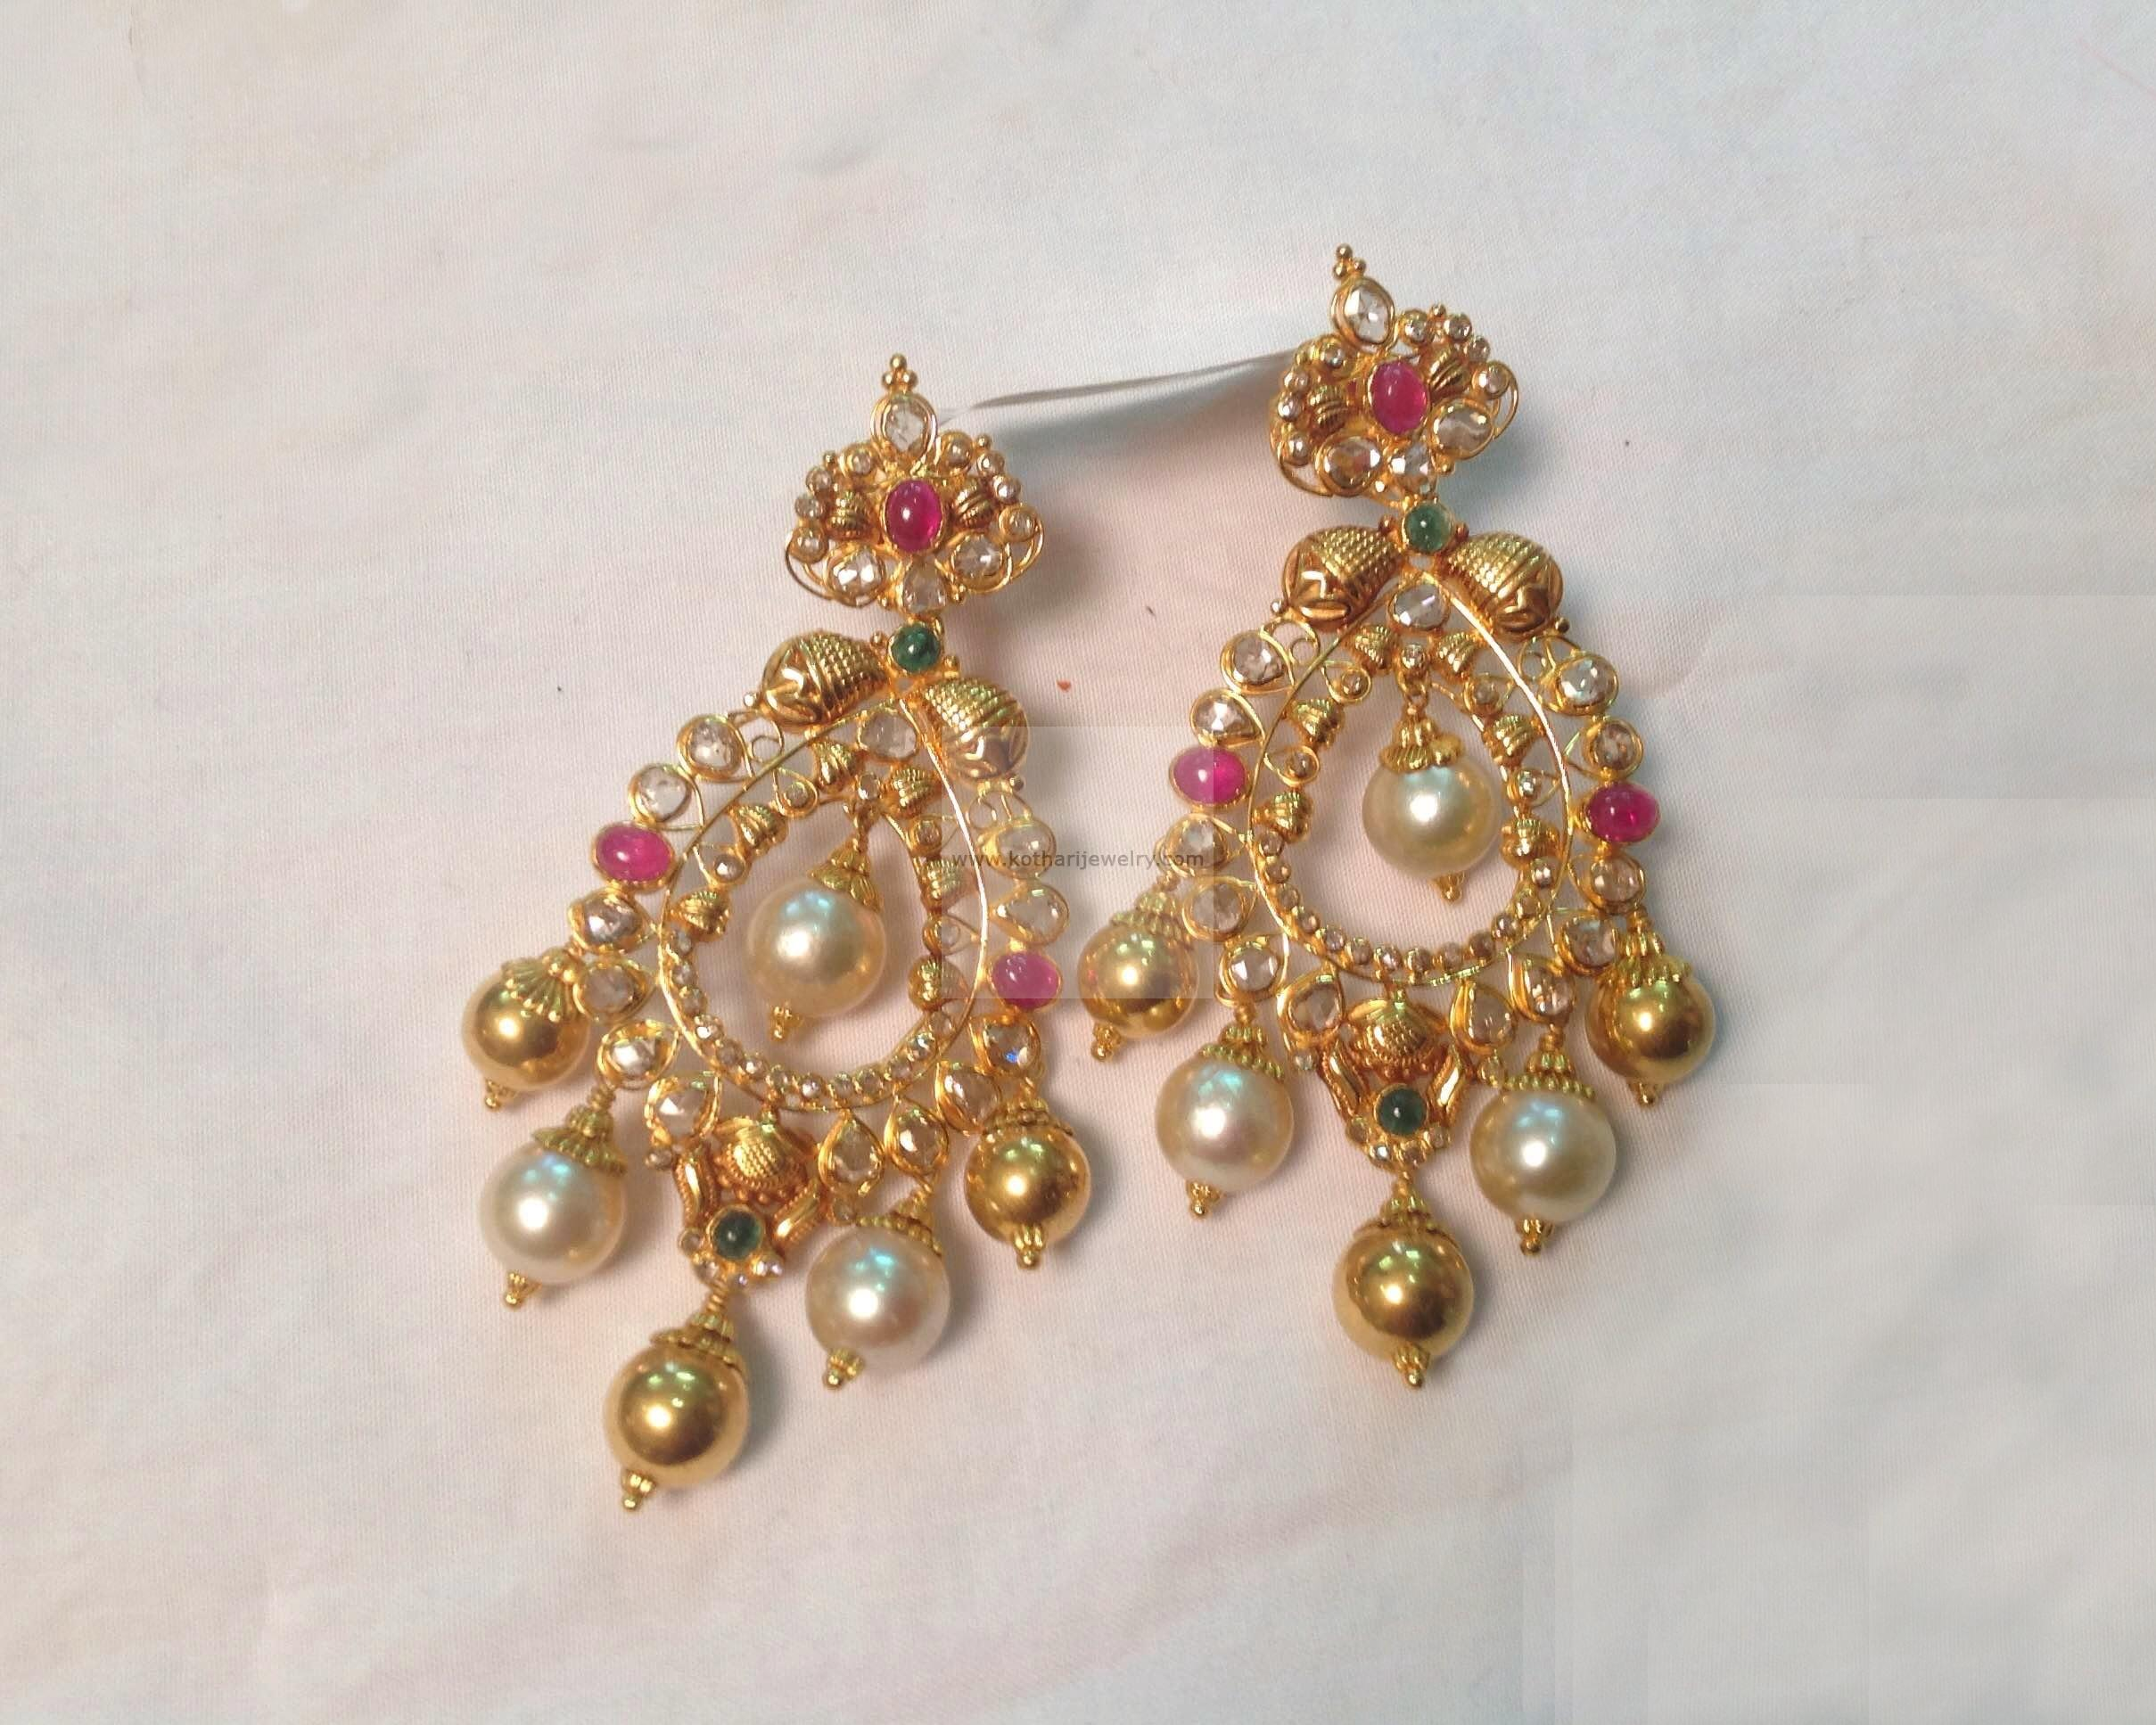 von earrings s melissa product harari diamond gold yossi mart bargen jewelry